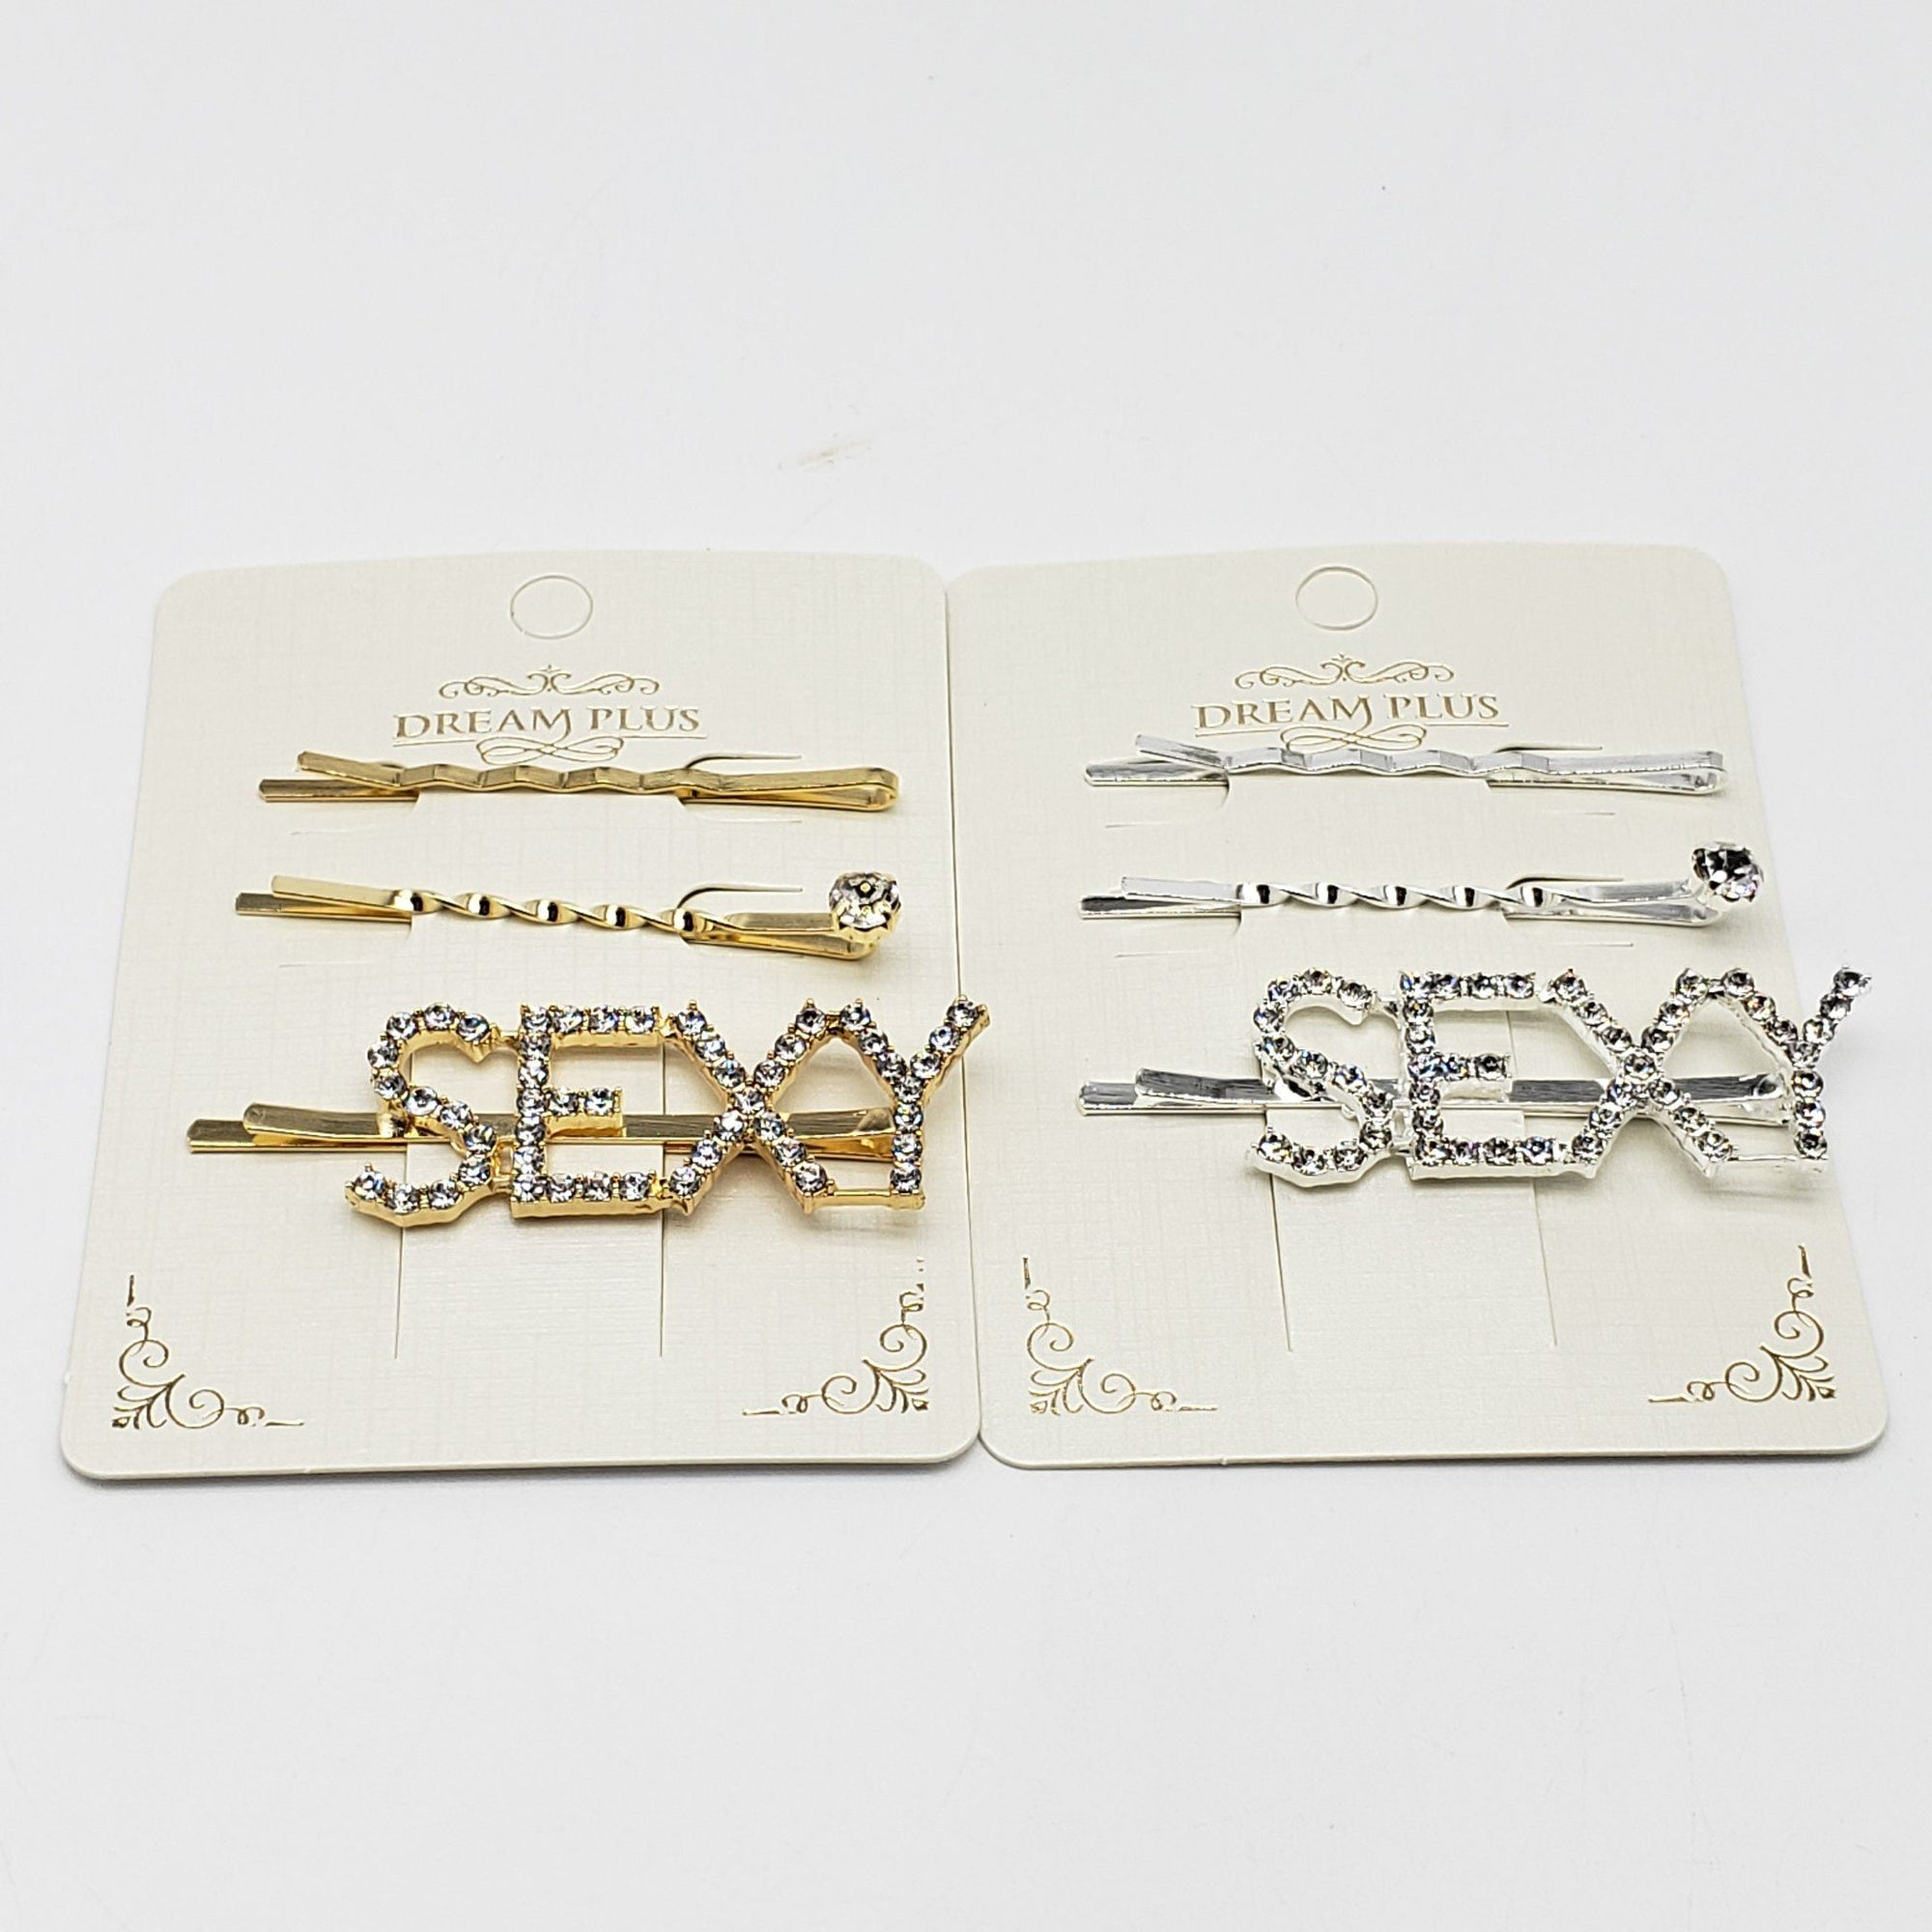 Dream Plus Gold and Silver SEXY Hair Pins #DHP495GS (12PC)